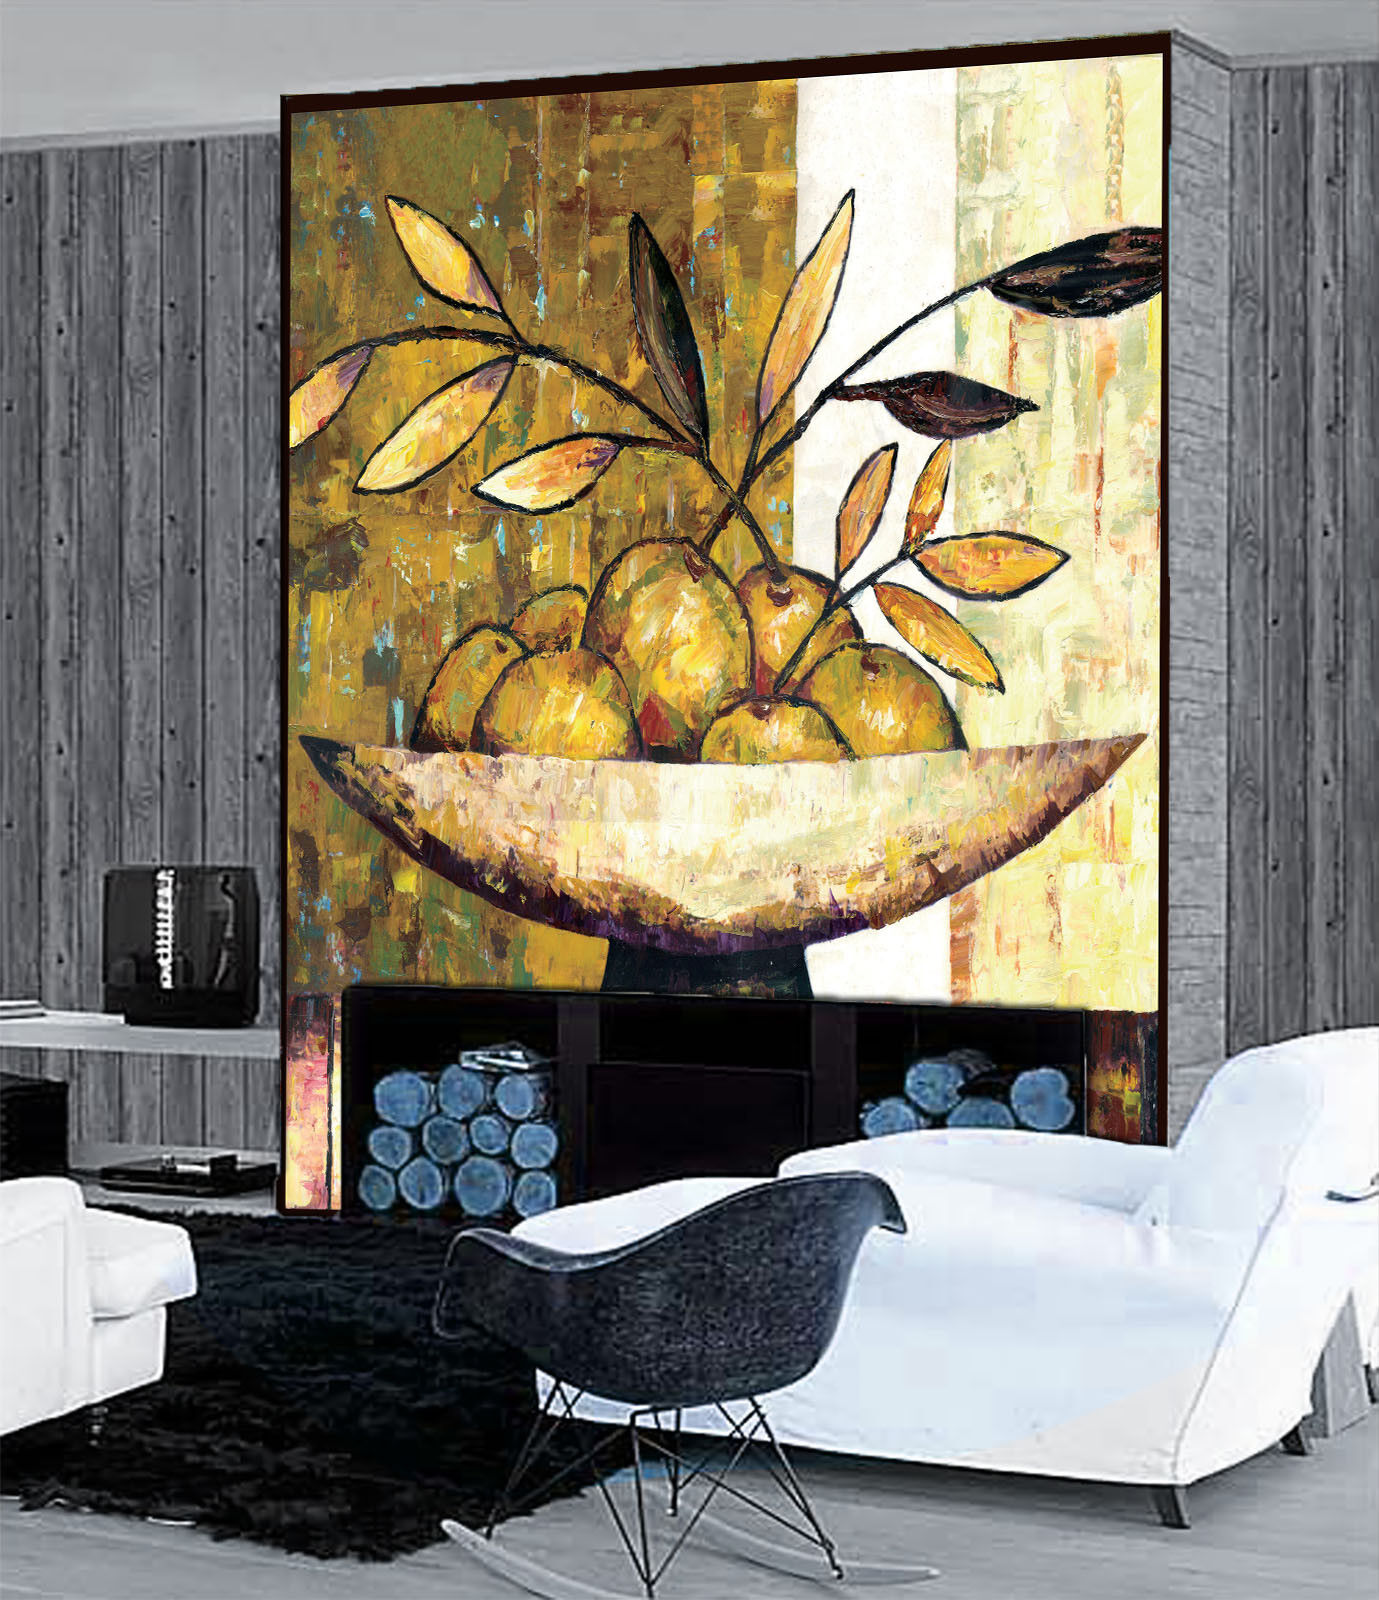 3D Fruit Plate Painting 452 Wall Paper Wall Print Decal Wall Deco Indoor Mural